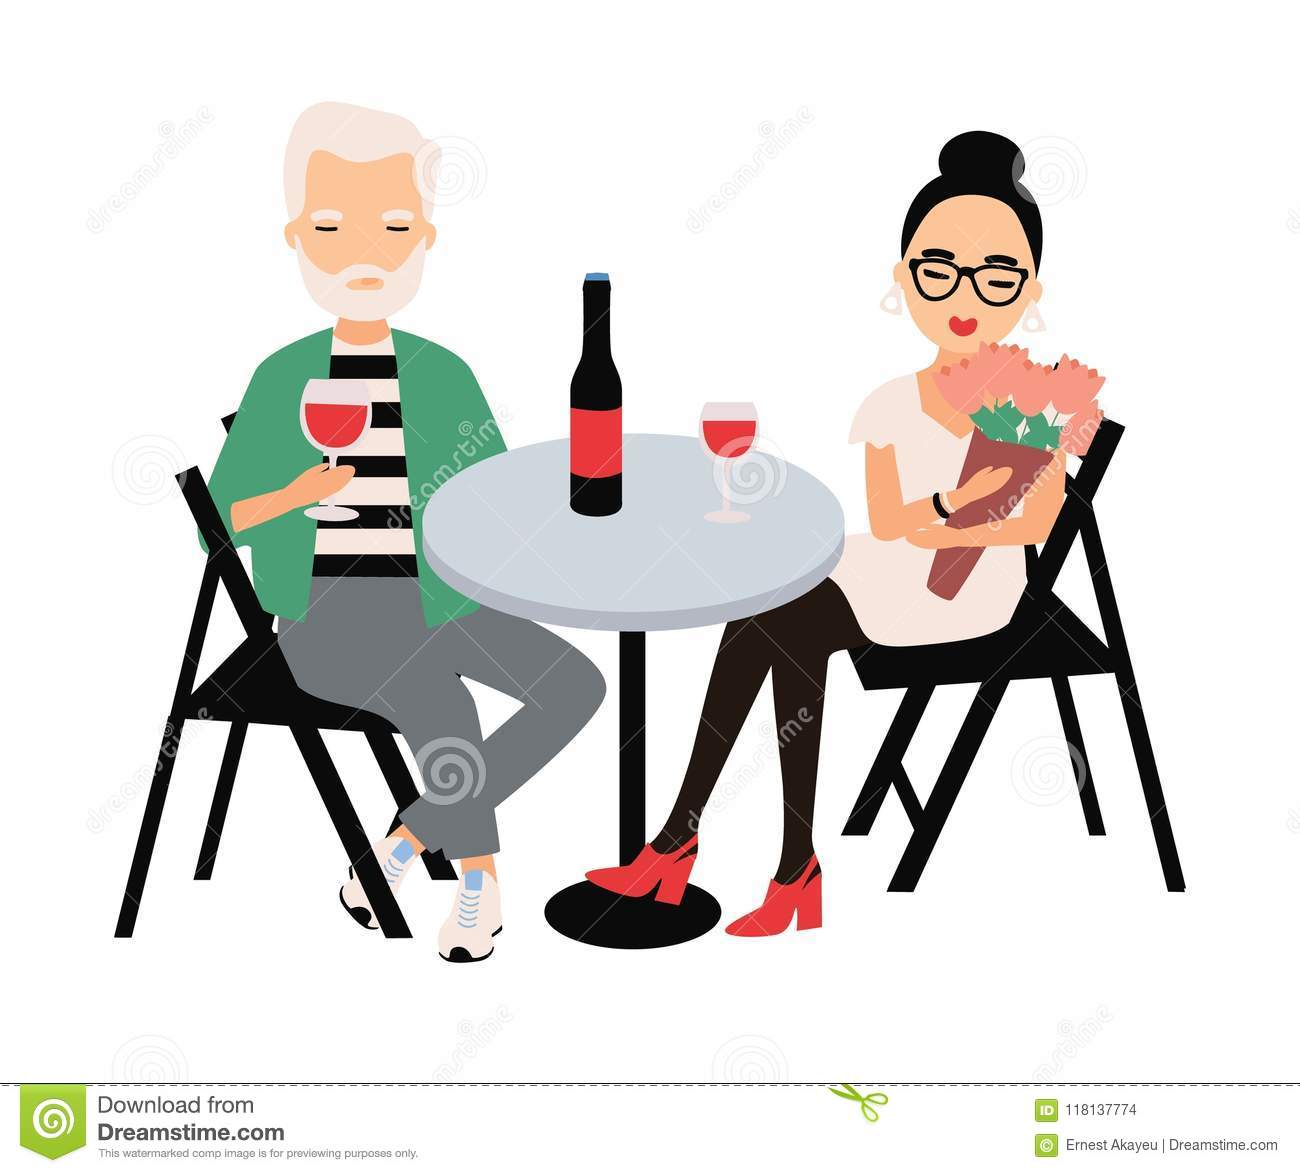 Soiree Wine Night is a speed dating event for all wine lovers to enjoy!